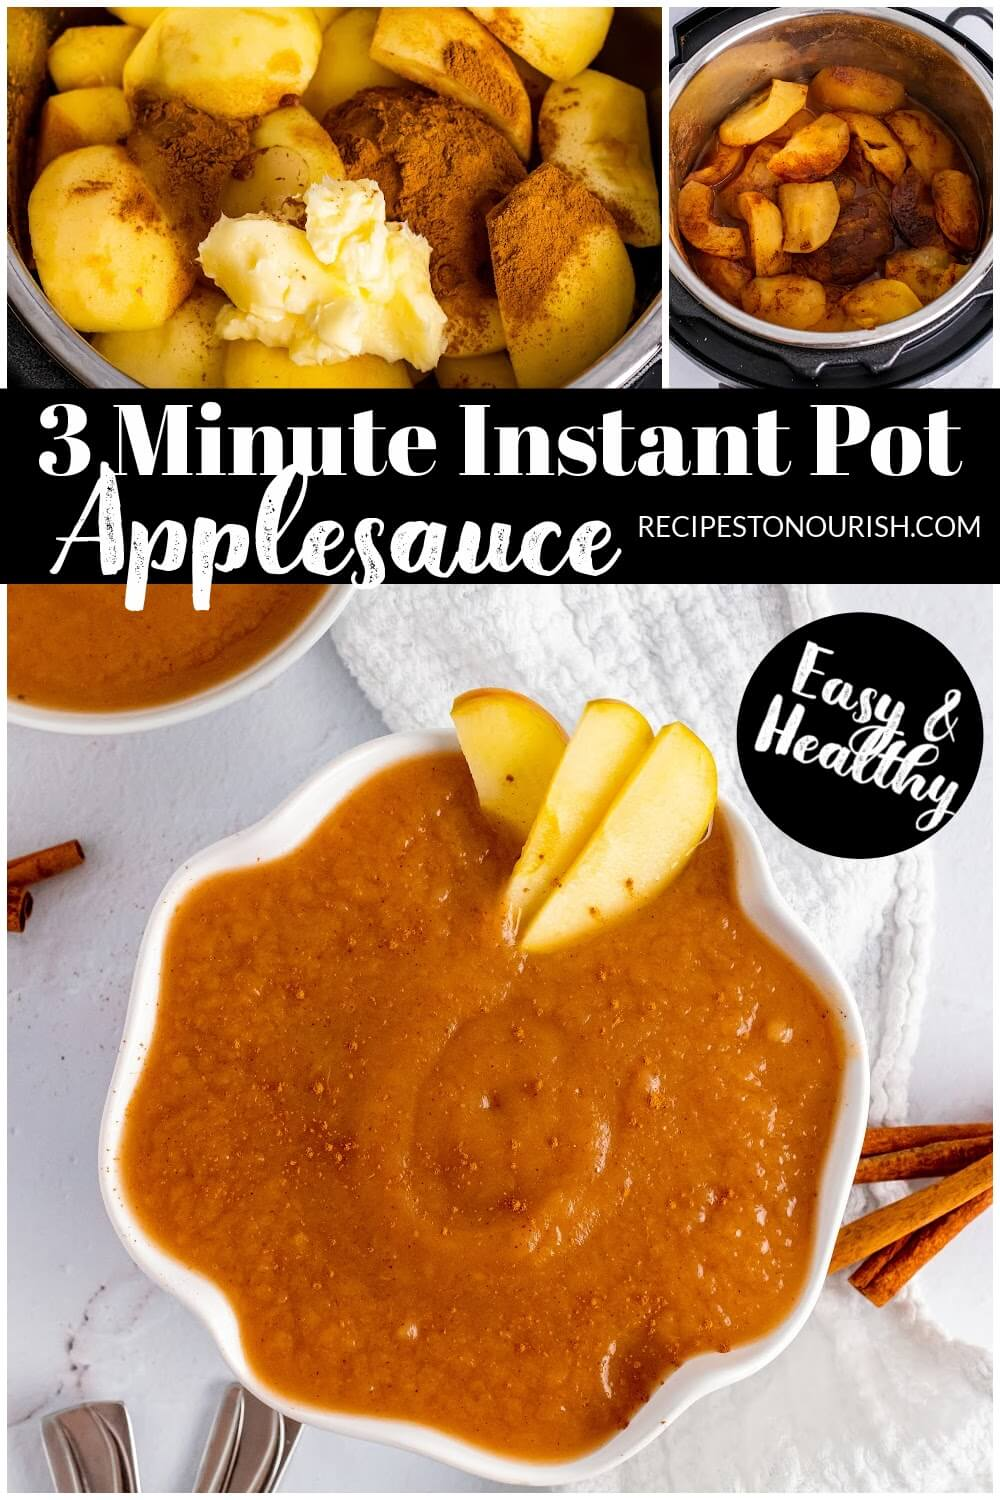 Overhead of Instant Pots with raw apples and cinnamon, cooked apples in cinnamon and a bowl filled with homemade applesauce with apple slices and cinnamon sticks next to the bowl.